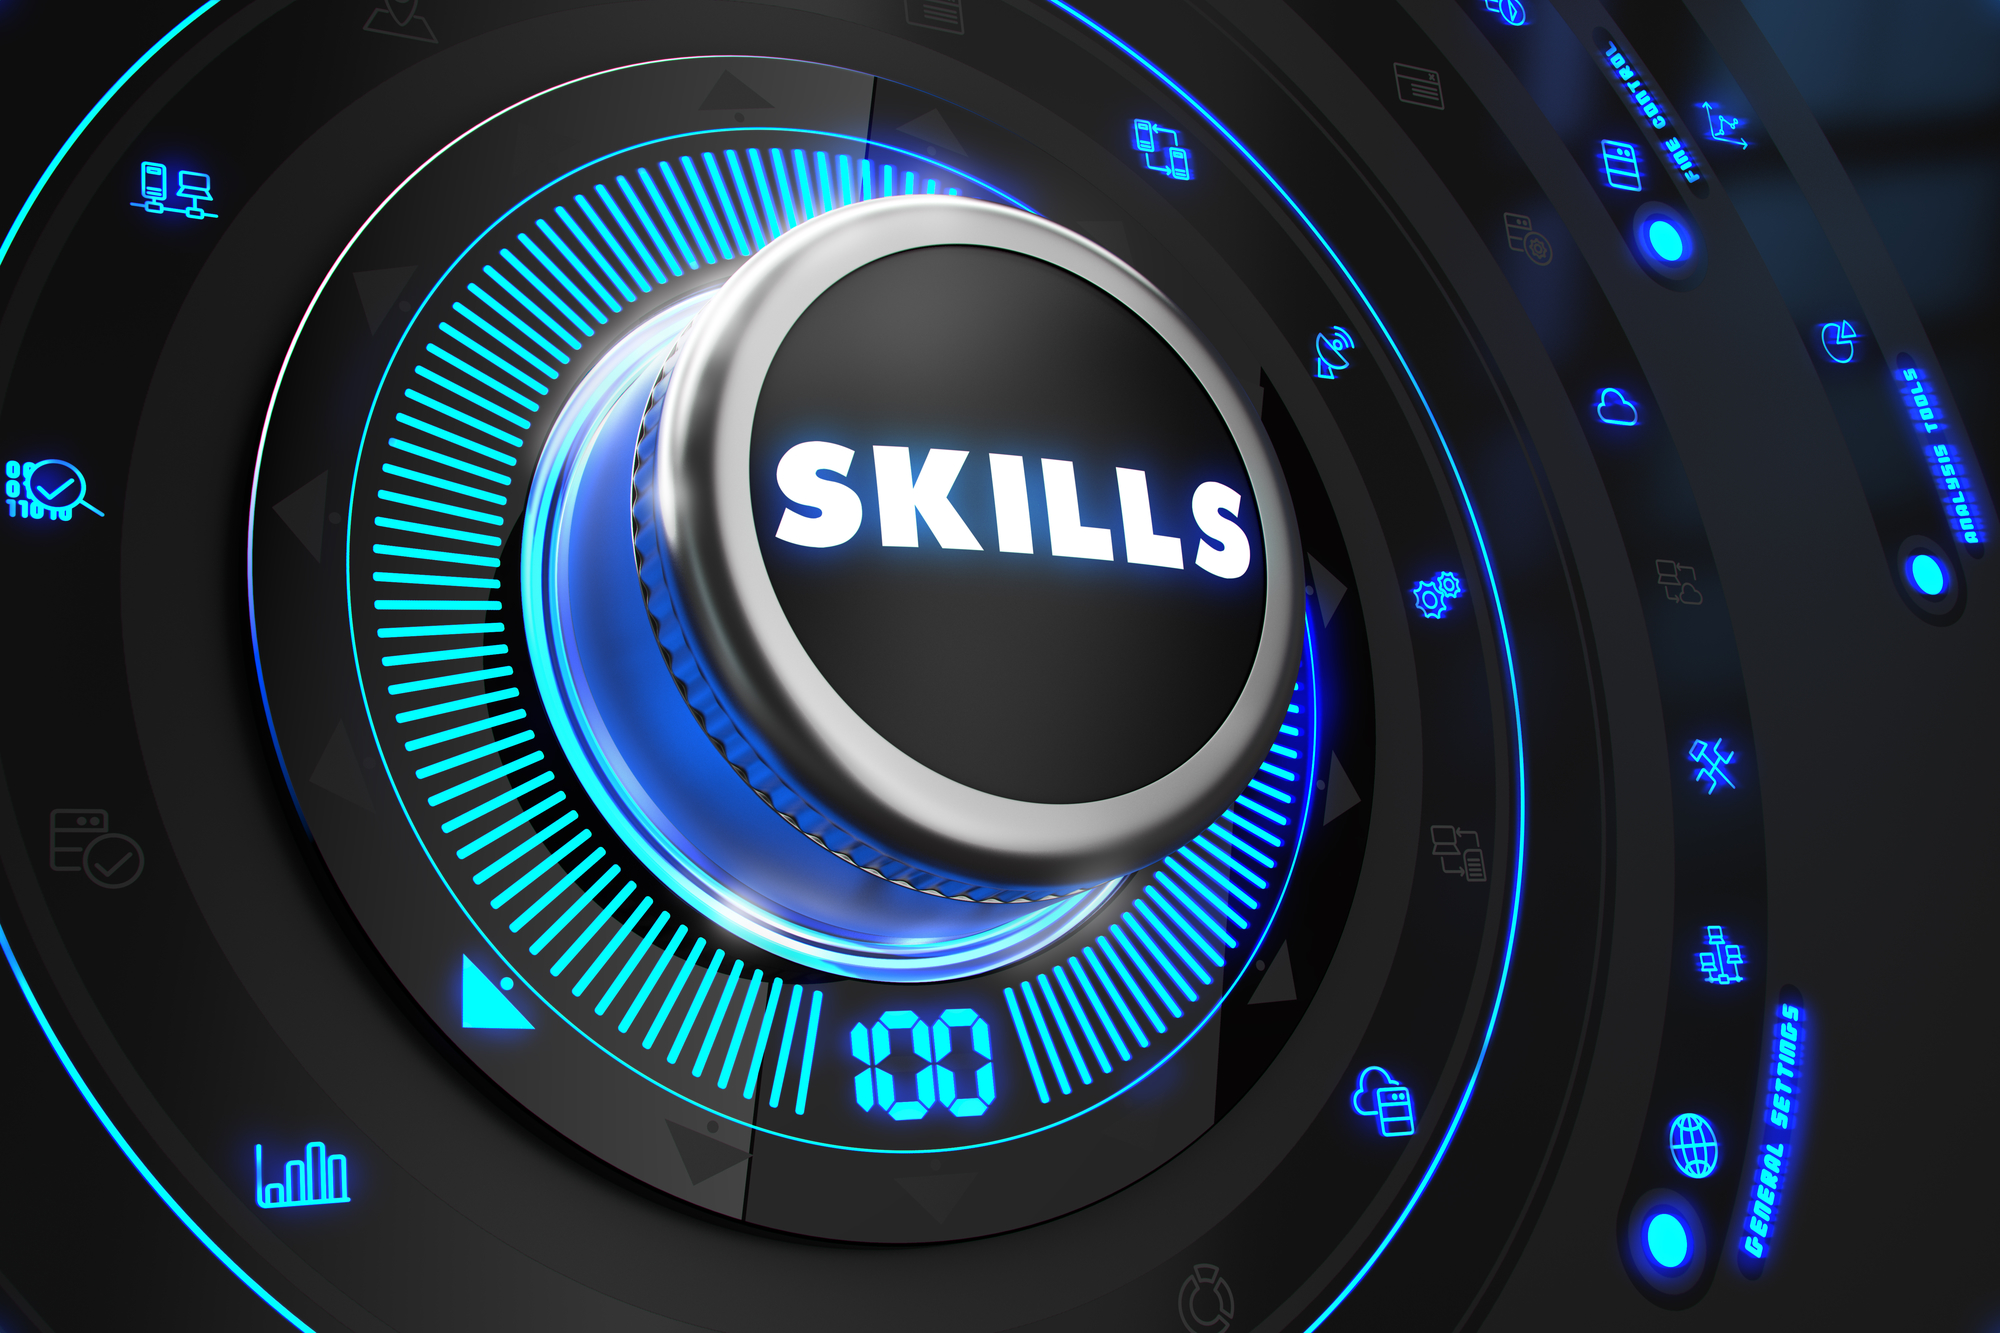 What Skills Are You Going To Master in 2018?